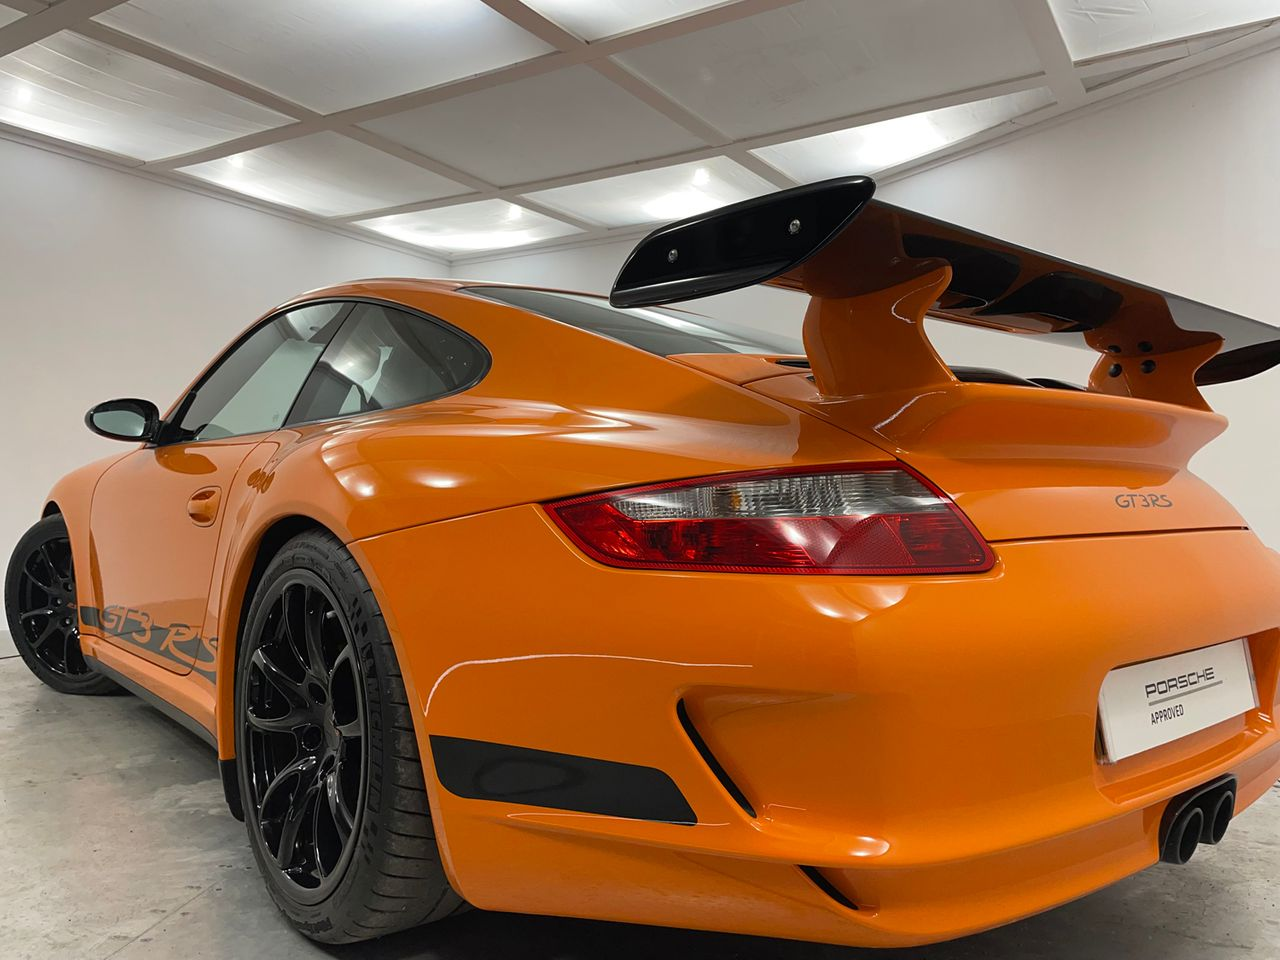 911 (997) GT3 RS image 26